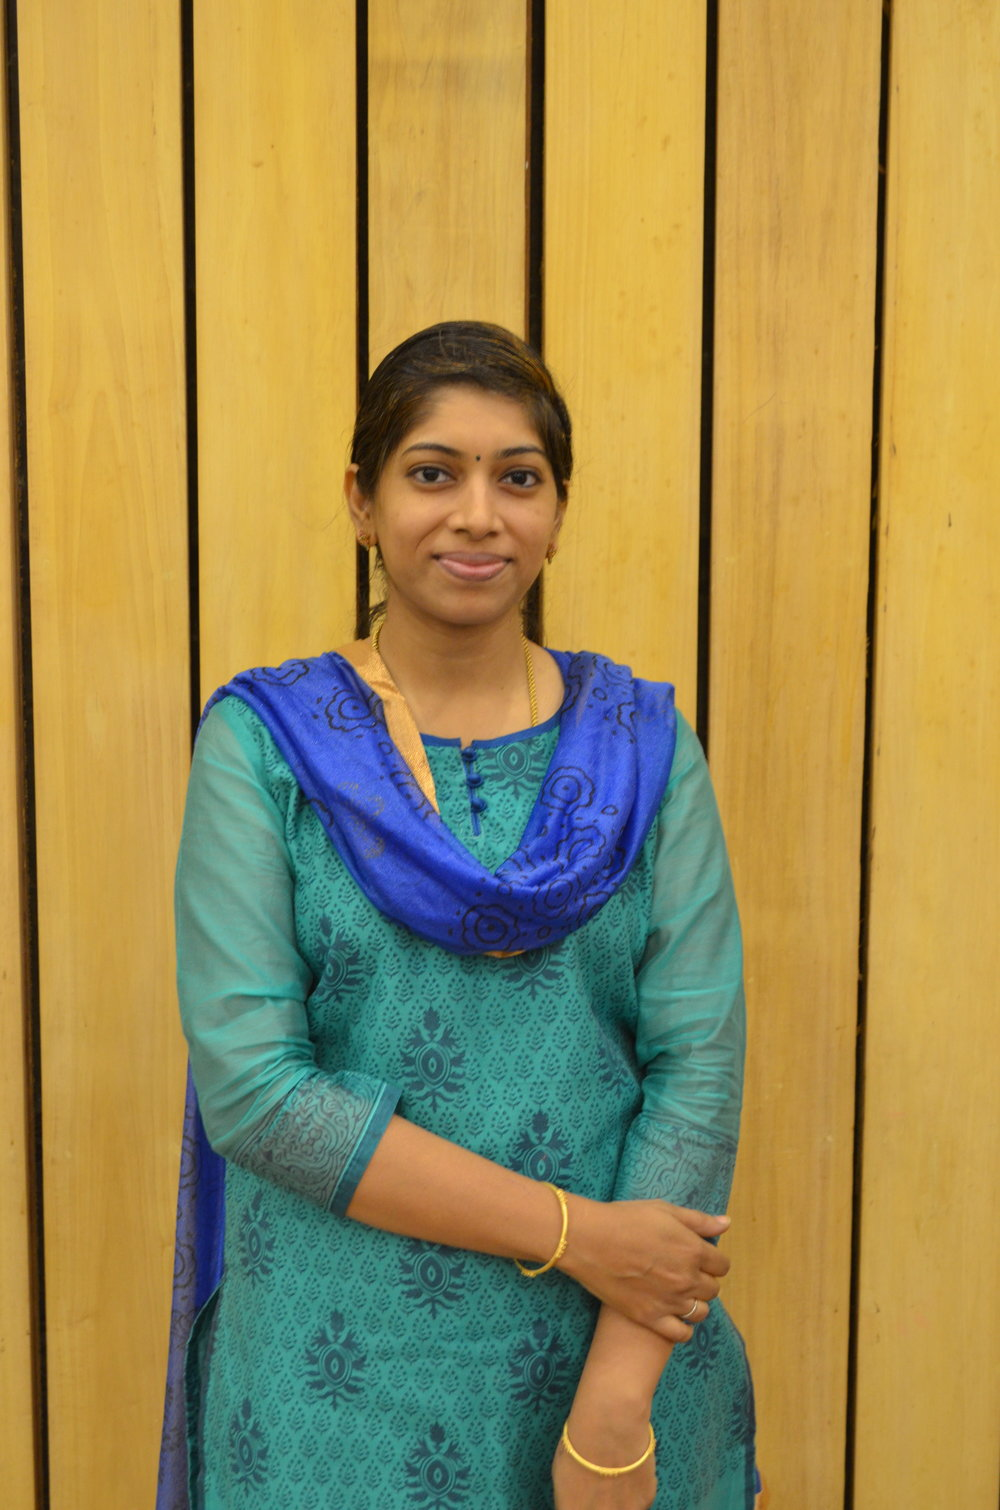 - Dr.D Sreedevi is working as Reader in the Department of oral medicine and Radiology, Saveetha Dental college from April 2014 till date. She finished her basic dental degree from The Tamil Nadu Dr.M.G.R.Medical University Chennai and her Masters degree in Oral Medicine and Radiology from Saveetha University in the year 2013. She has numerous awards and achievements to her credit and has also guided many undergraduate research projects, motivated them in presenting papers and posters in national and international conferences, winning awards and constantly encouraging them in doing publications too.Conferences attended - 21Workshop - 7Publications - 22